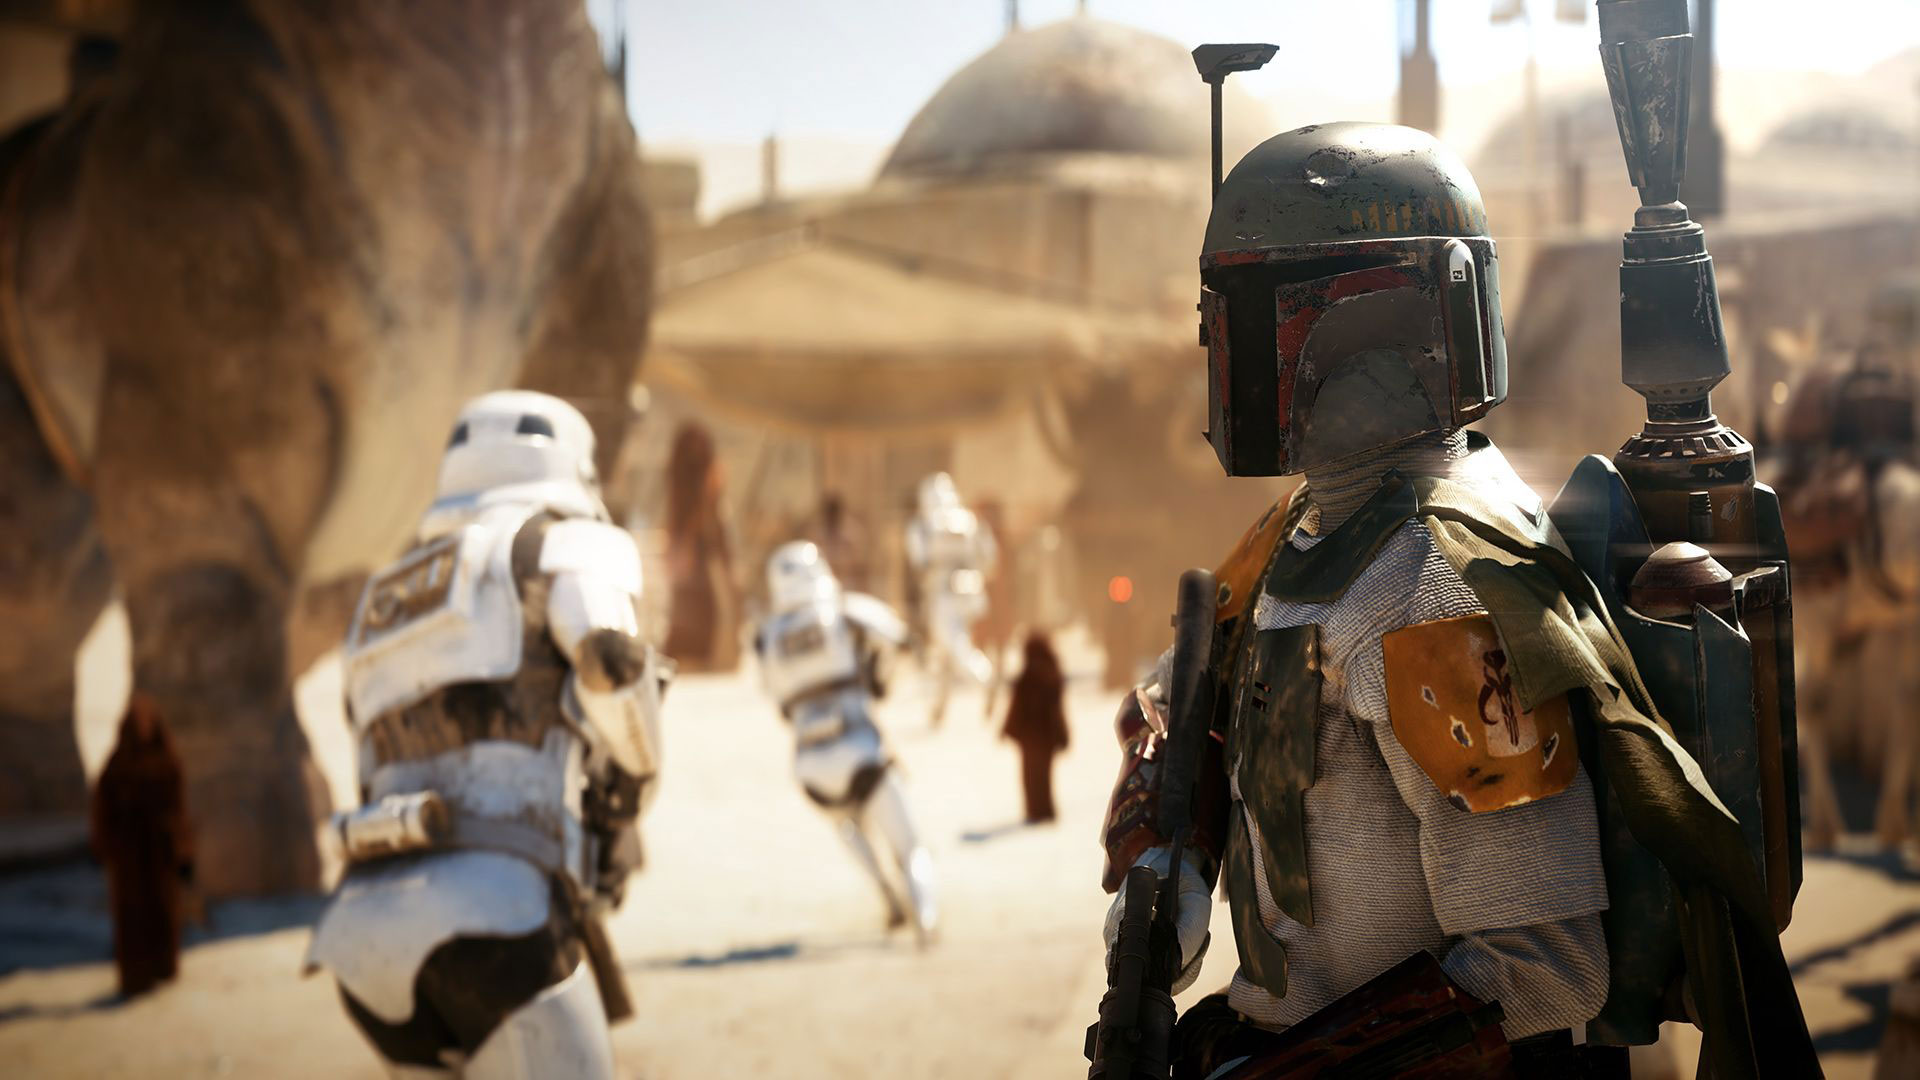 Star Wars Battlefront 2 is now part of the EA Access game vault.